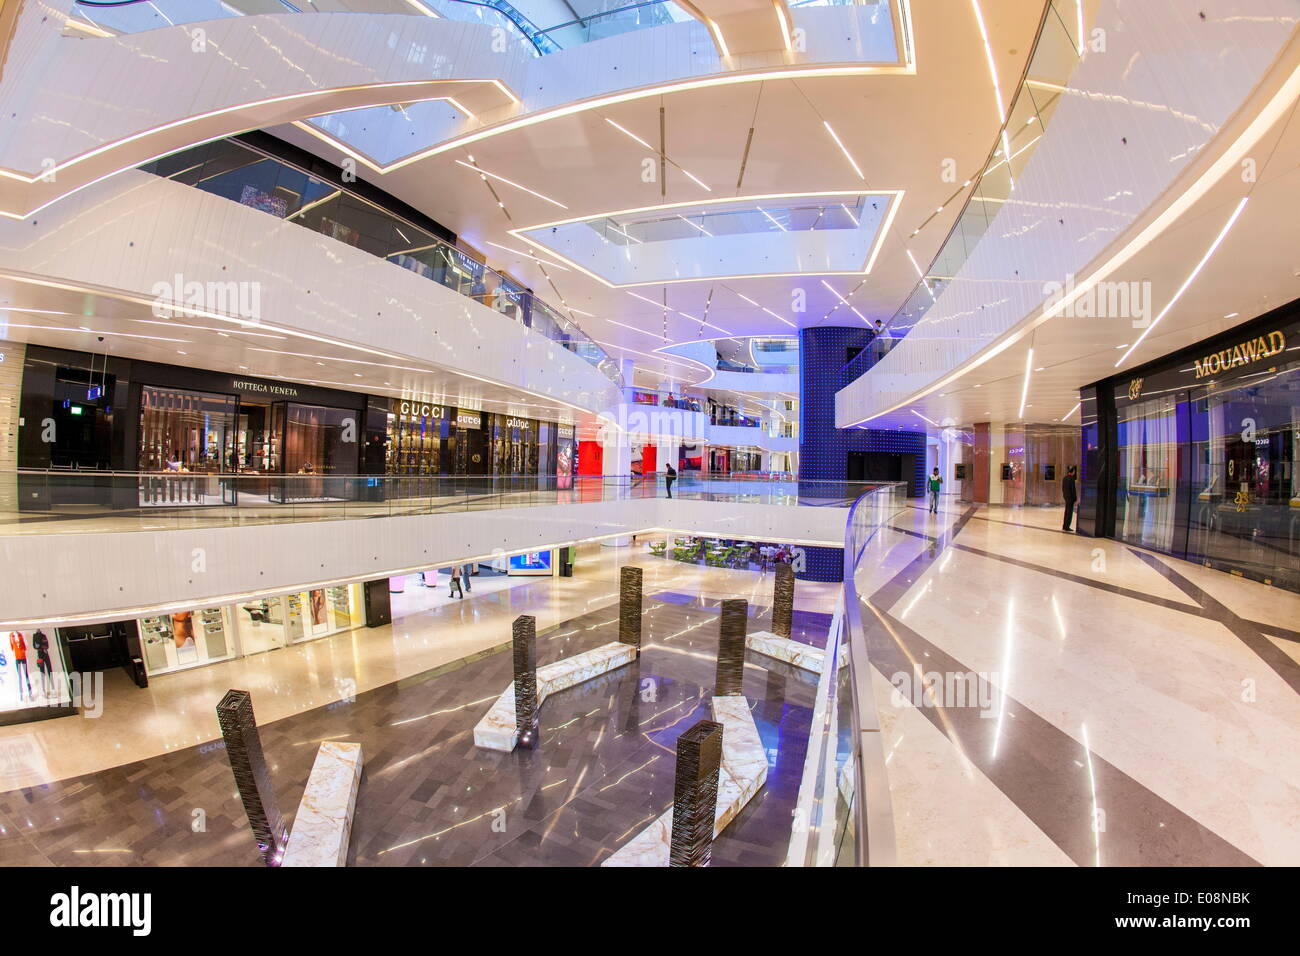 Al Hamra Tower, completed in 2011 includes a luxury business and shopping center, Kuwait City, Kuwait, Middle East - Stock Image